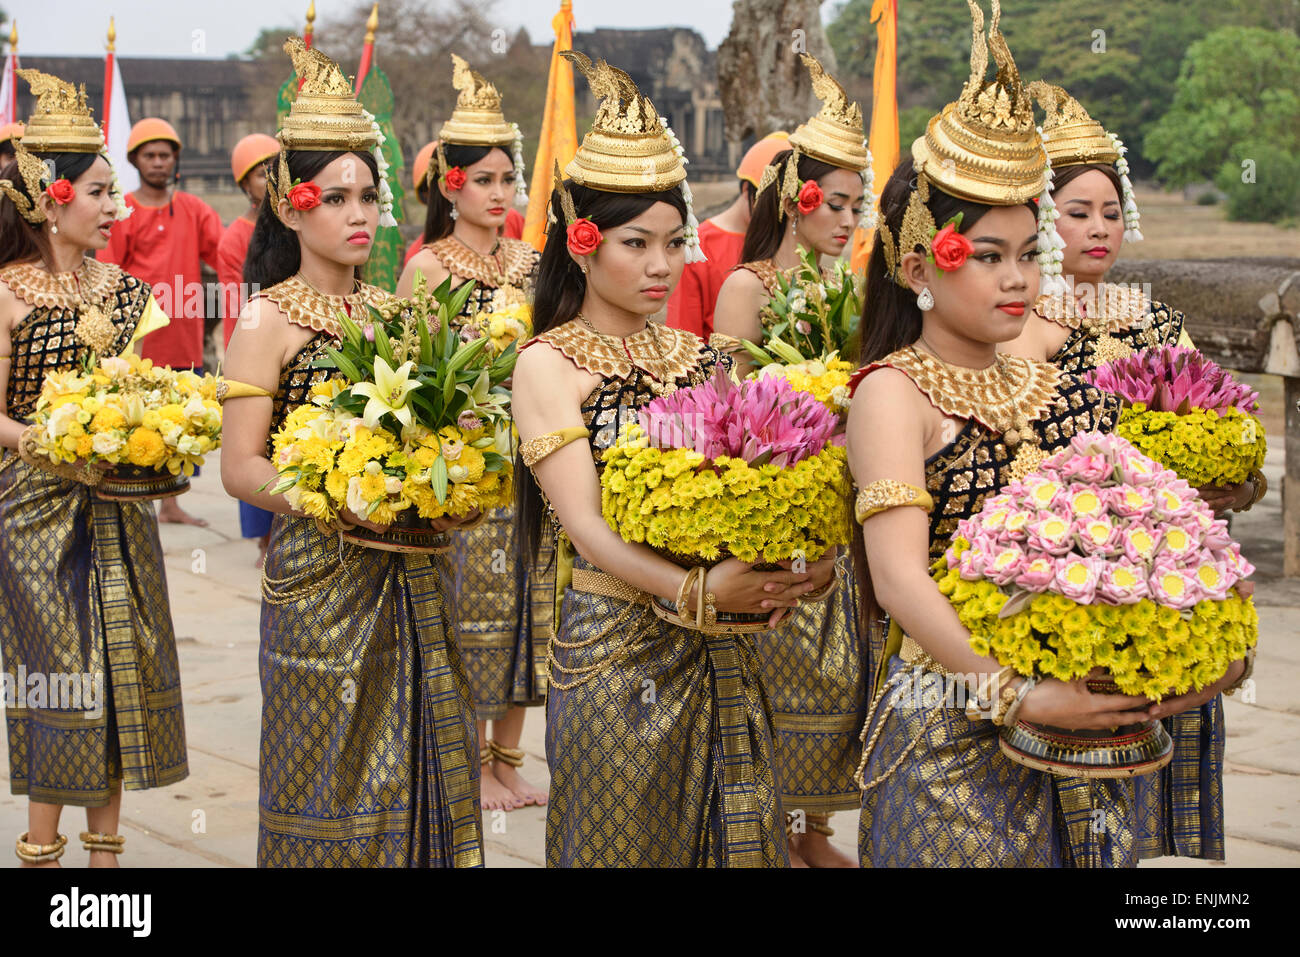 Khmer New Year at Angkor Wat in Siem Reap, Cambodia Stock ...